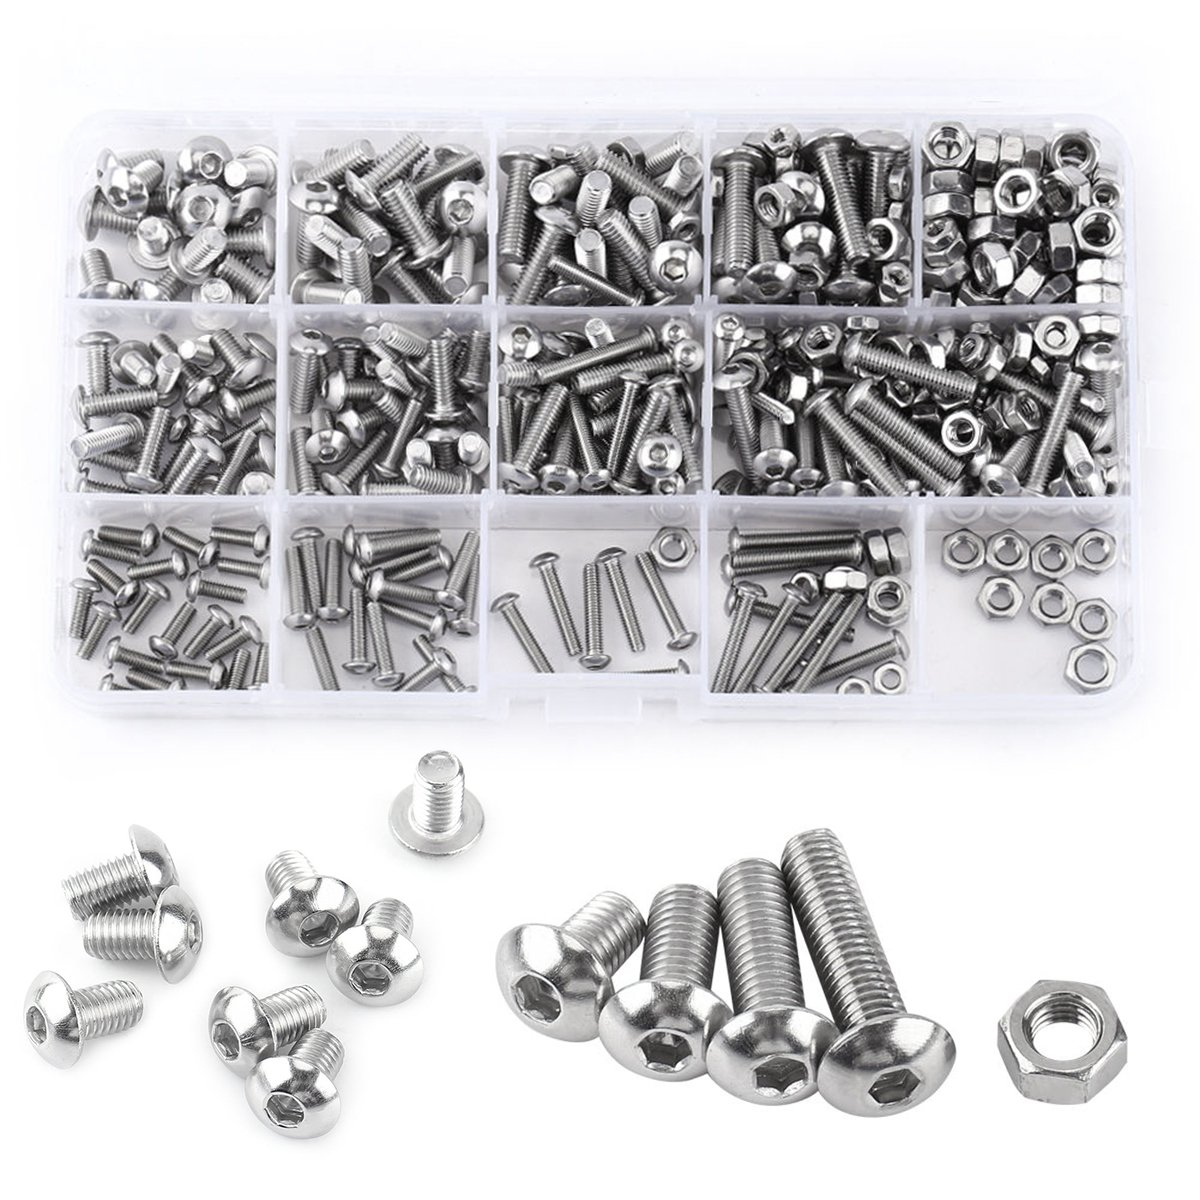 M3 M4 M5 Hex Socket Screws 304 Stainless Steel Button Head Bolts Nuts Assortment Kit Set,Pack of 440